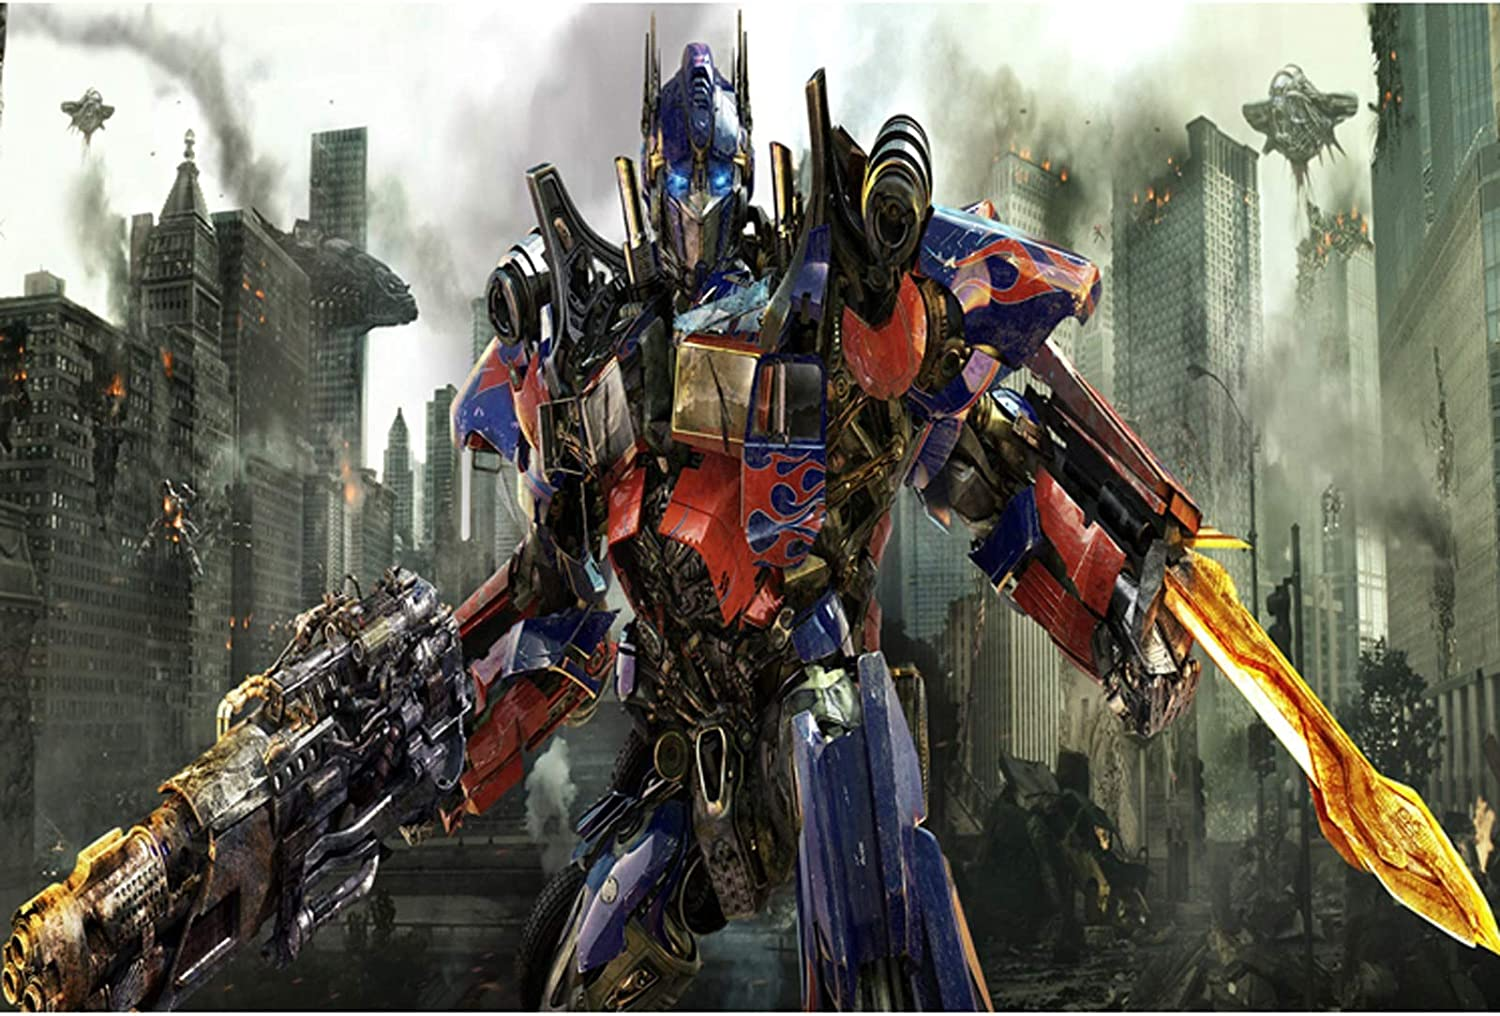 CHENZA Wooden Jigsaw Puzzles Transformers 12 1500 Max 85% OFF 200 Cheap super special price 500 1000